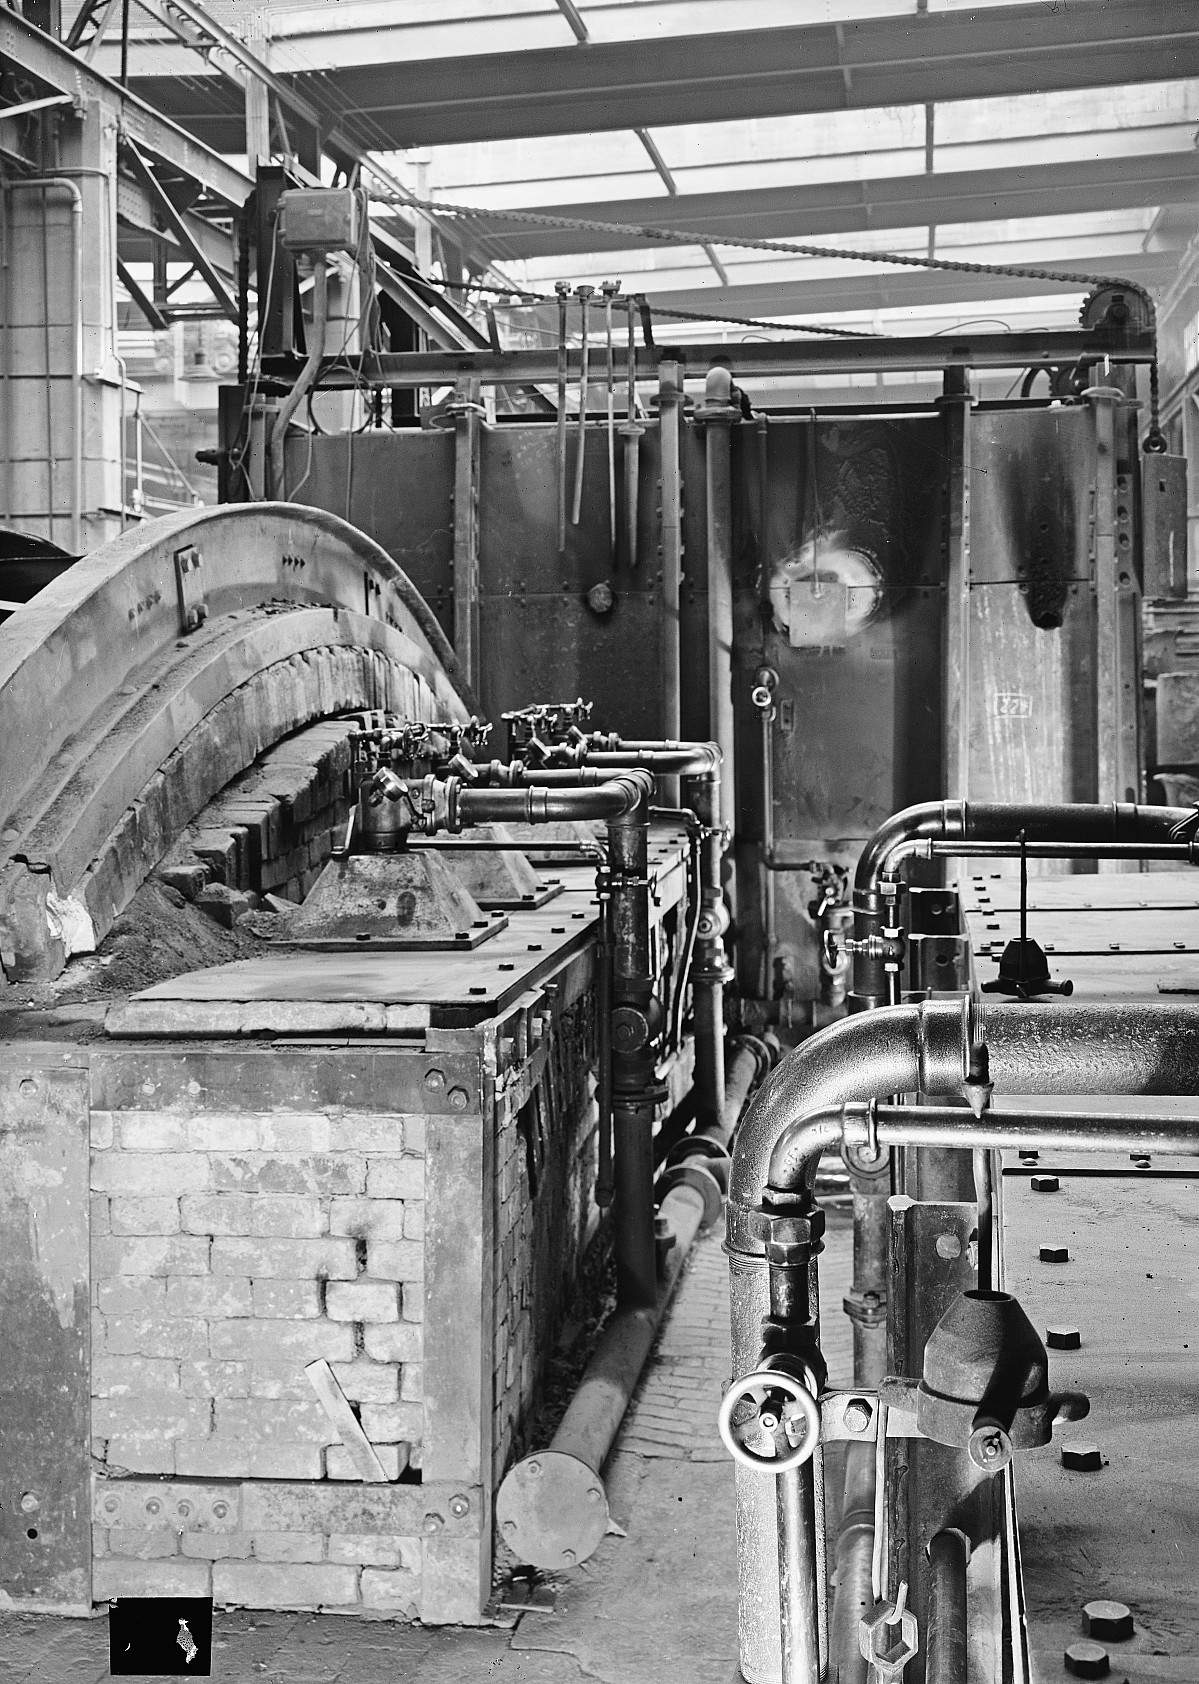 GFA 16/39296: Annealing shop, plant I